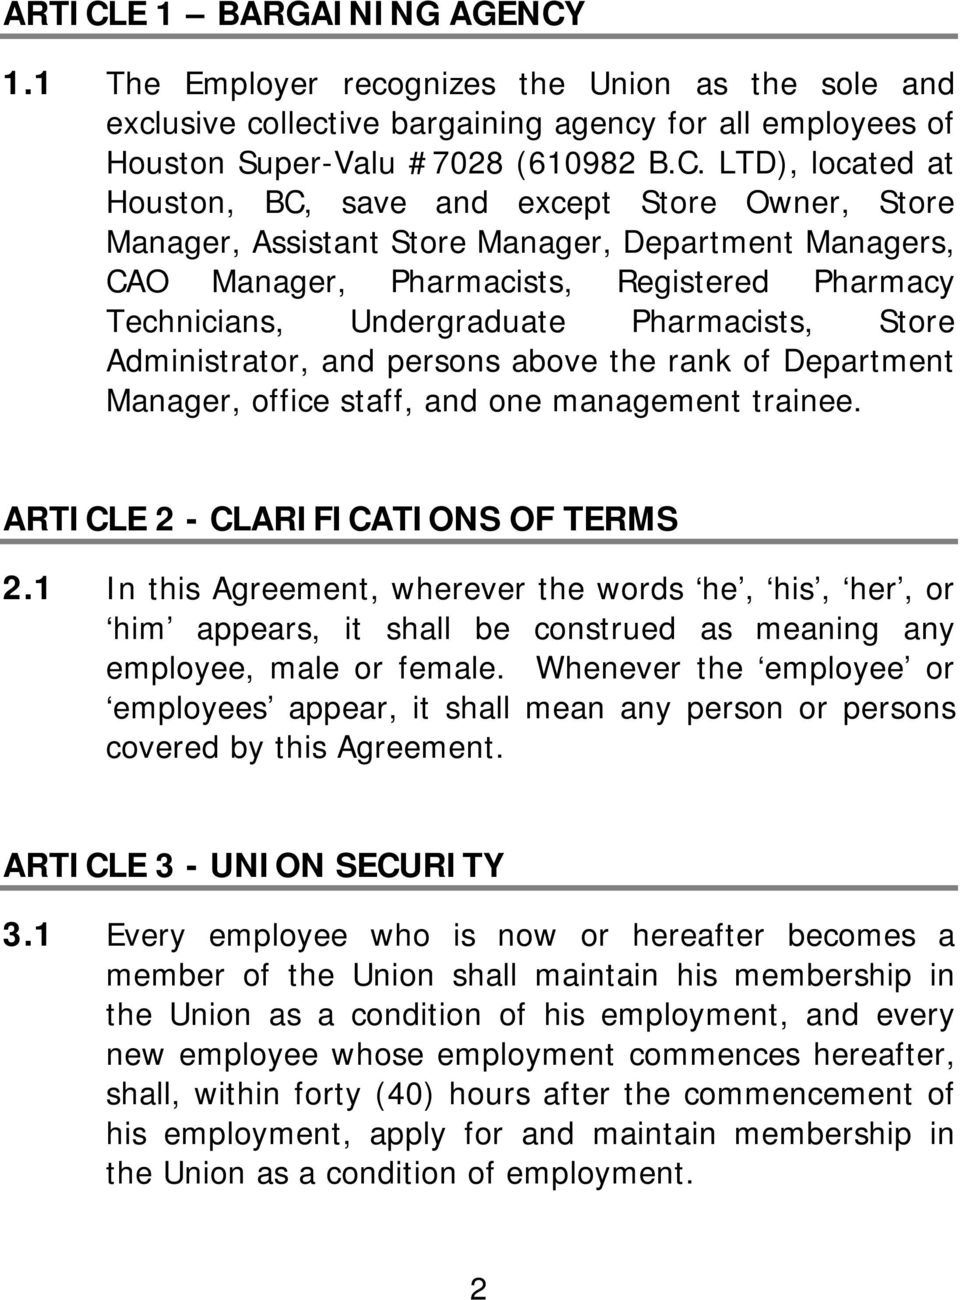 1.1 The Employer recognizes the Union as the sole and exclusive collective bargaining agency for all employees of Houston Super-Valu #7028 (610982 B.C.